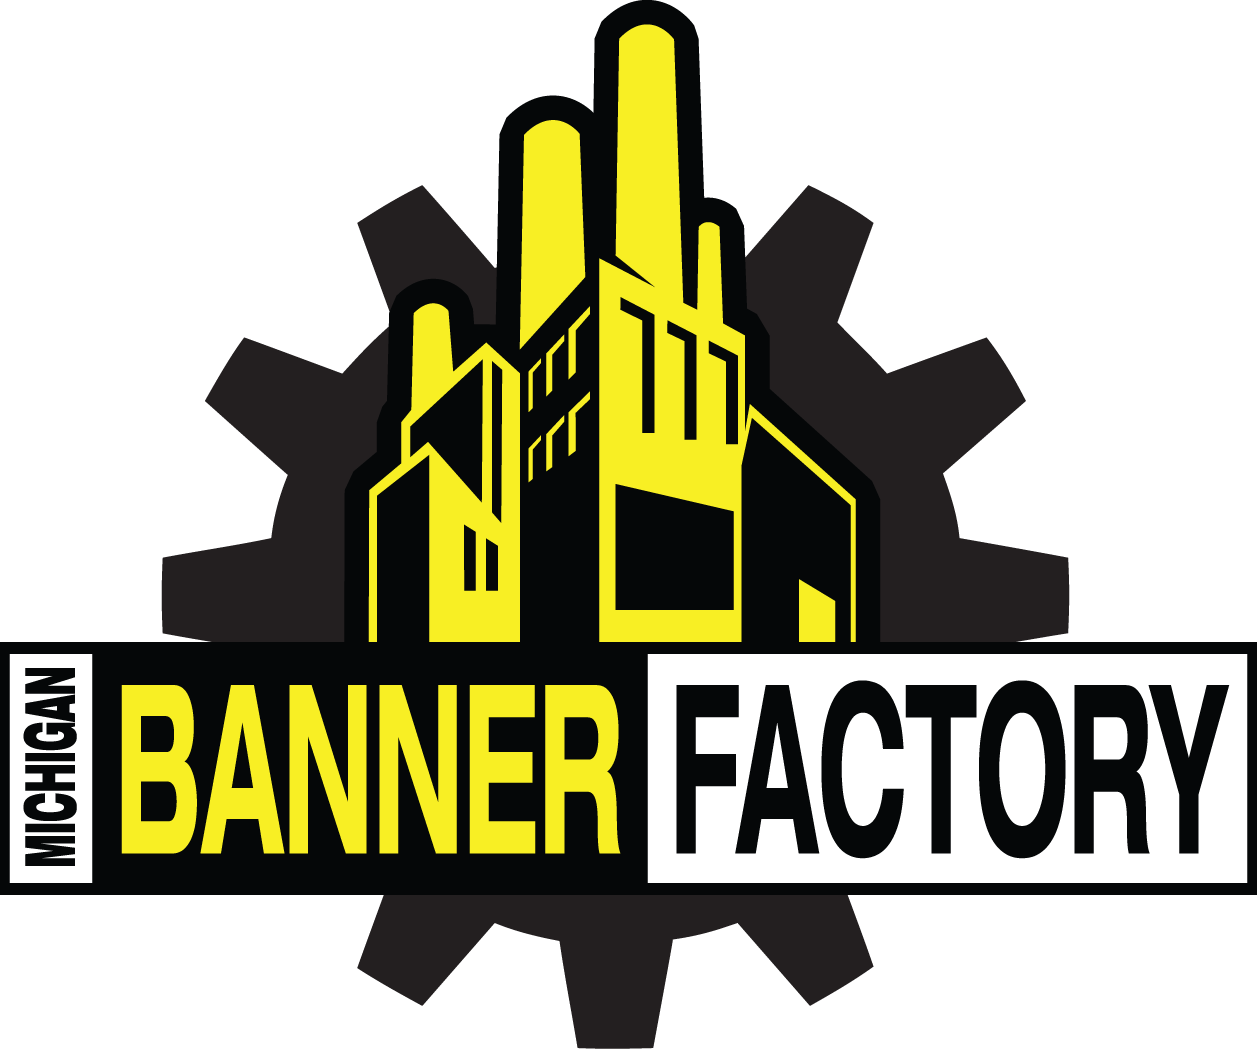 Michigan Banner Factory logo